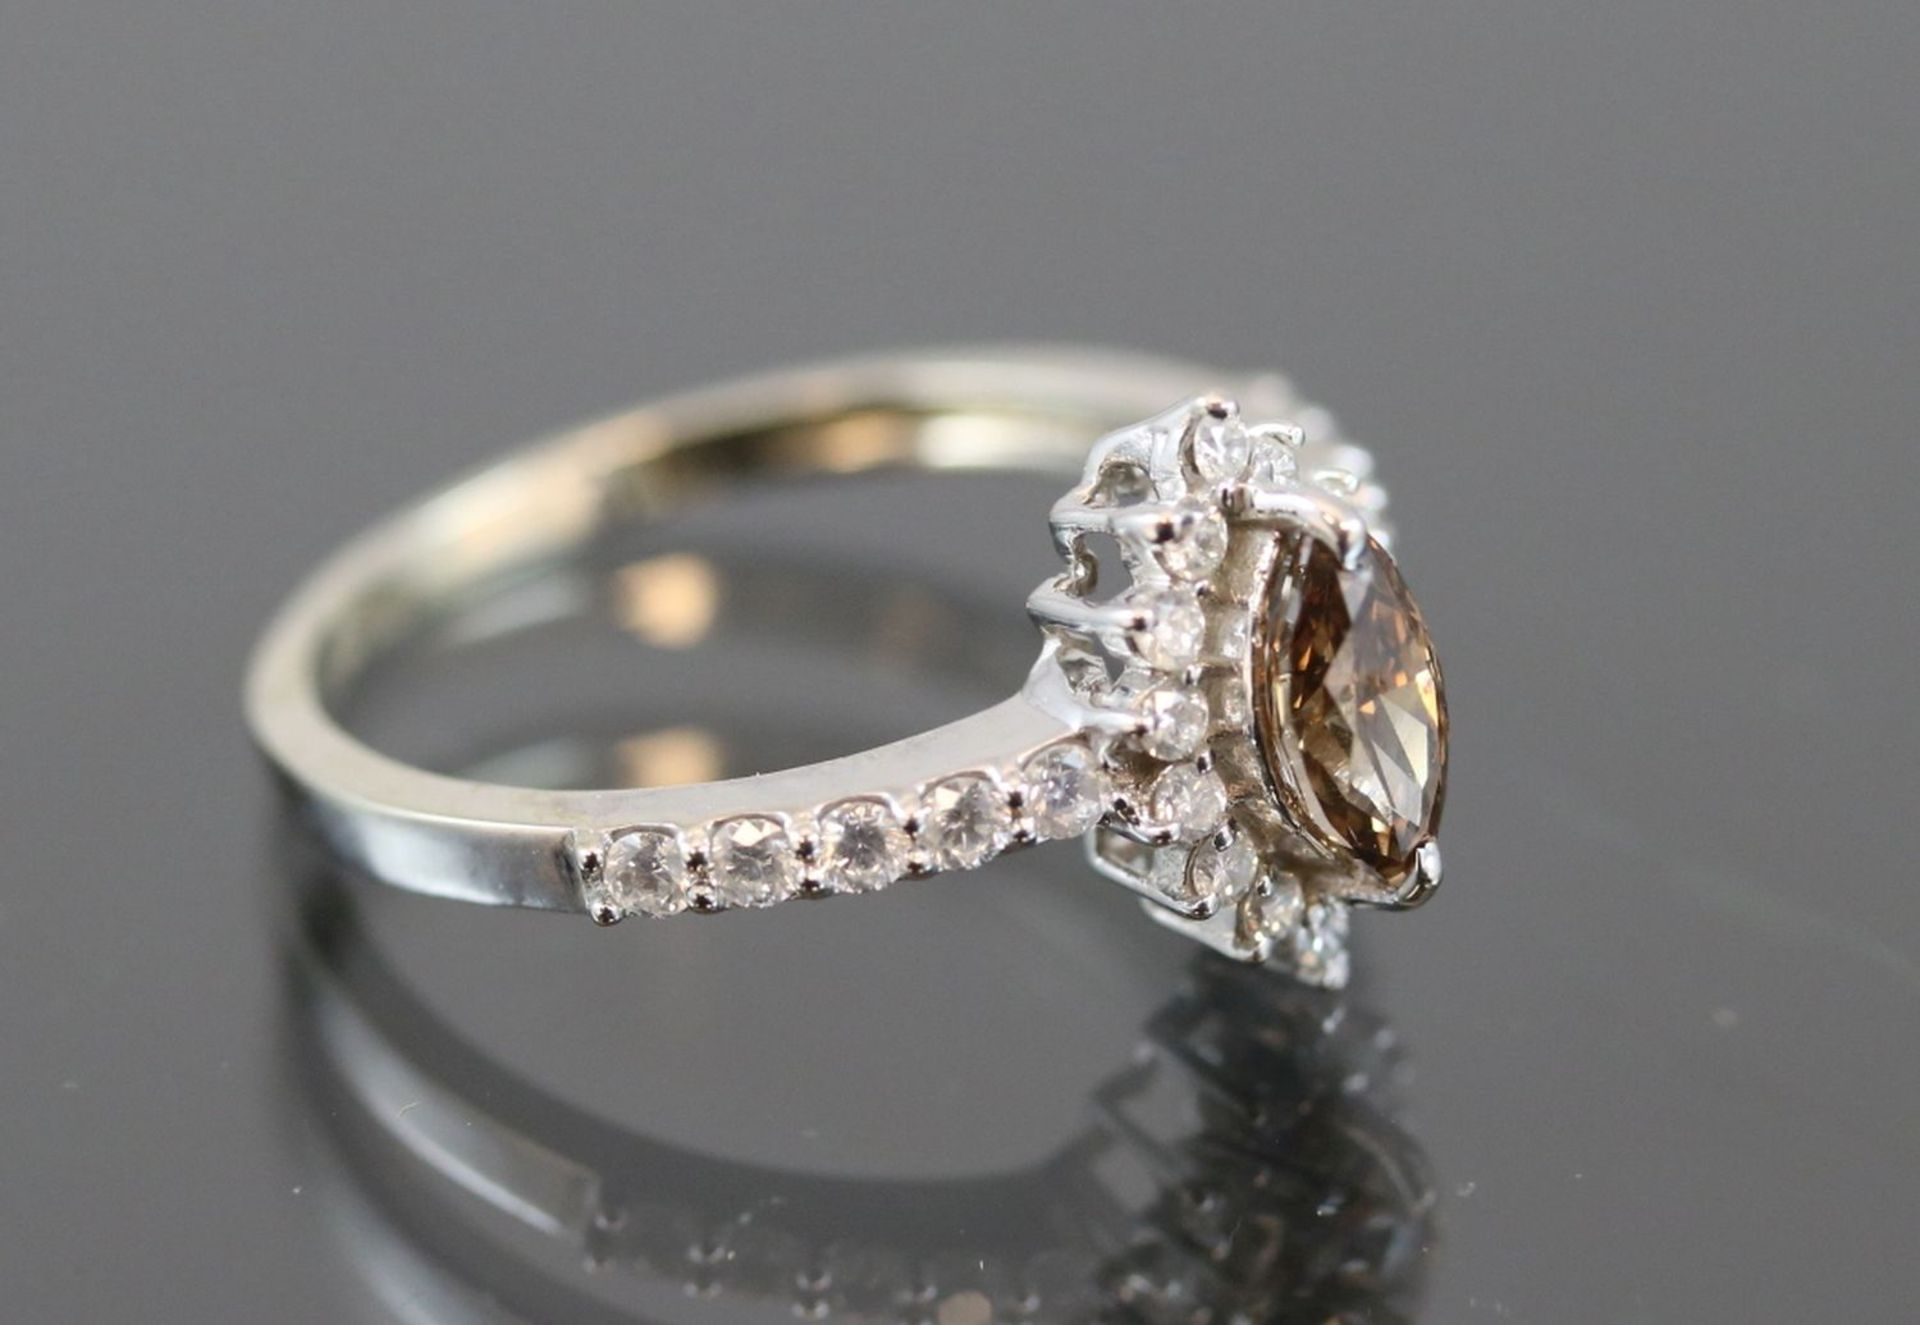 Los 26 - Brillant-Diamant-Ring, 585 Weißgold2,80 Gramm 1 Diamantnavette, ca. 0,40 ct., dark champ./si.